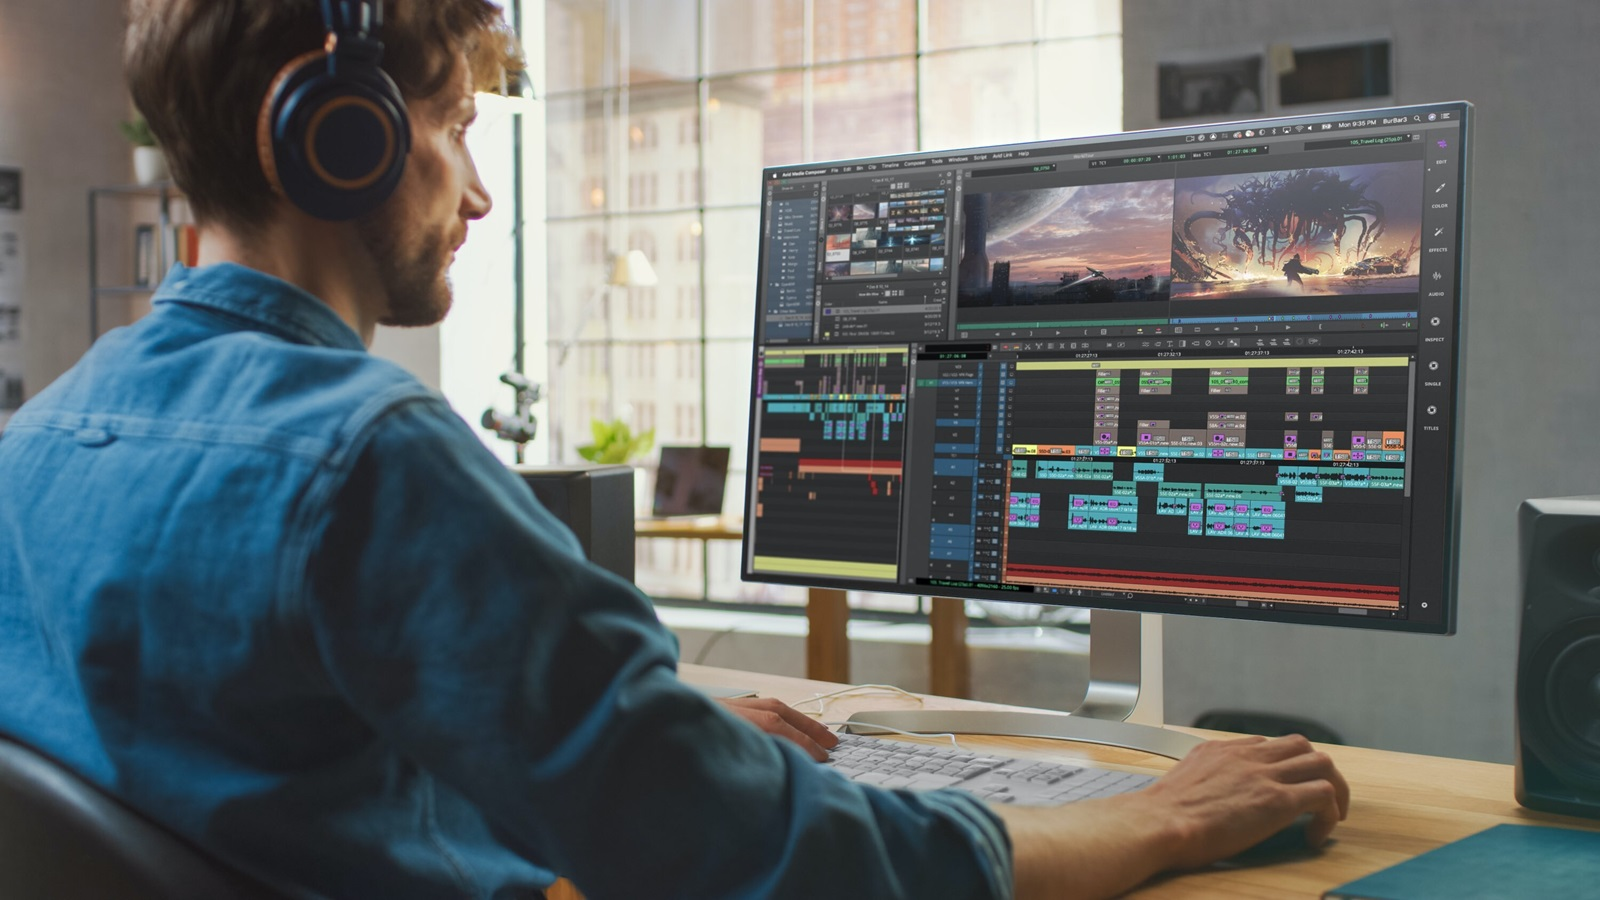 A remote video editor collaborates with his team while working on a project from home.